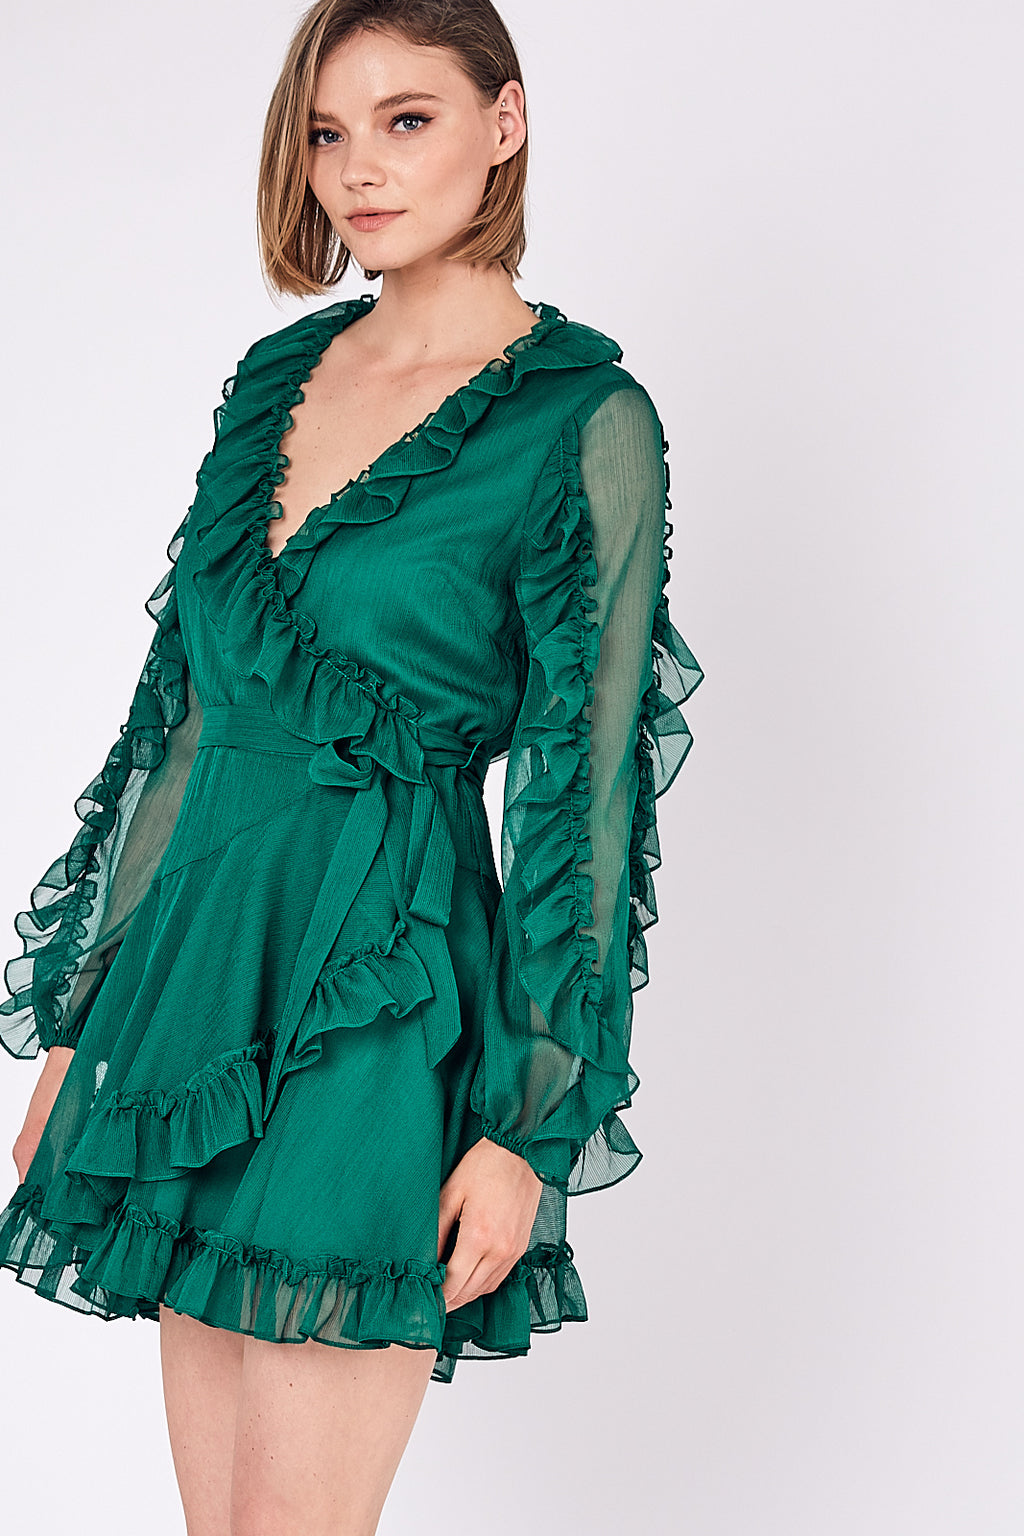 Celeste Ruffle Wrap Dress - Green